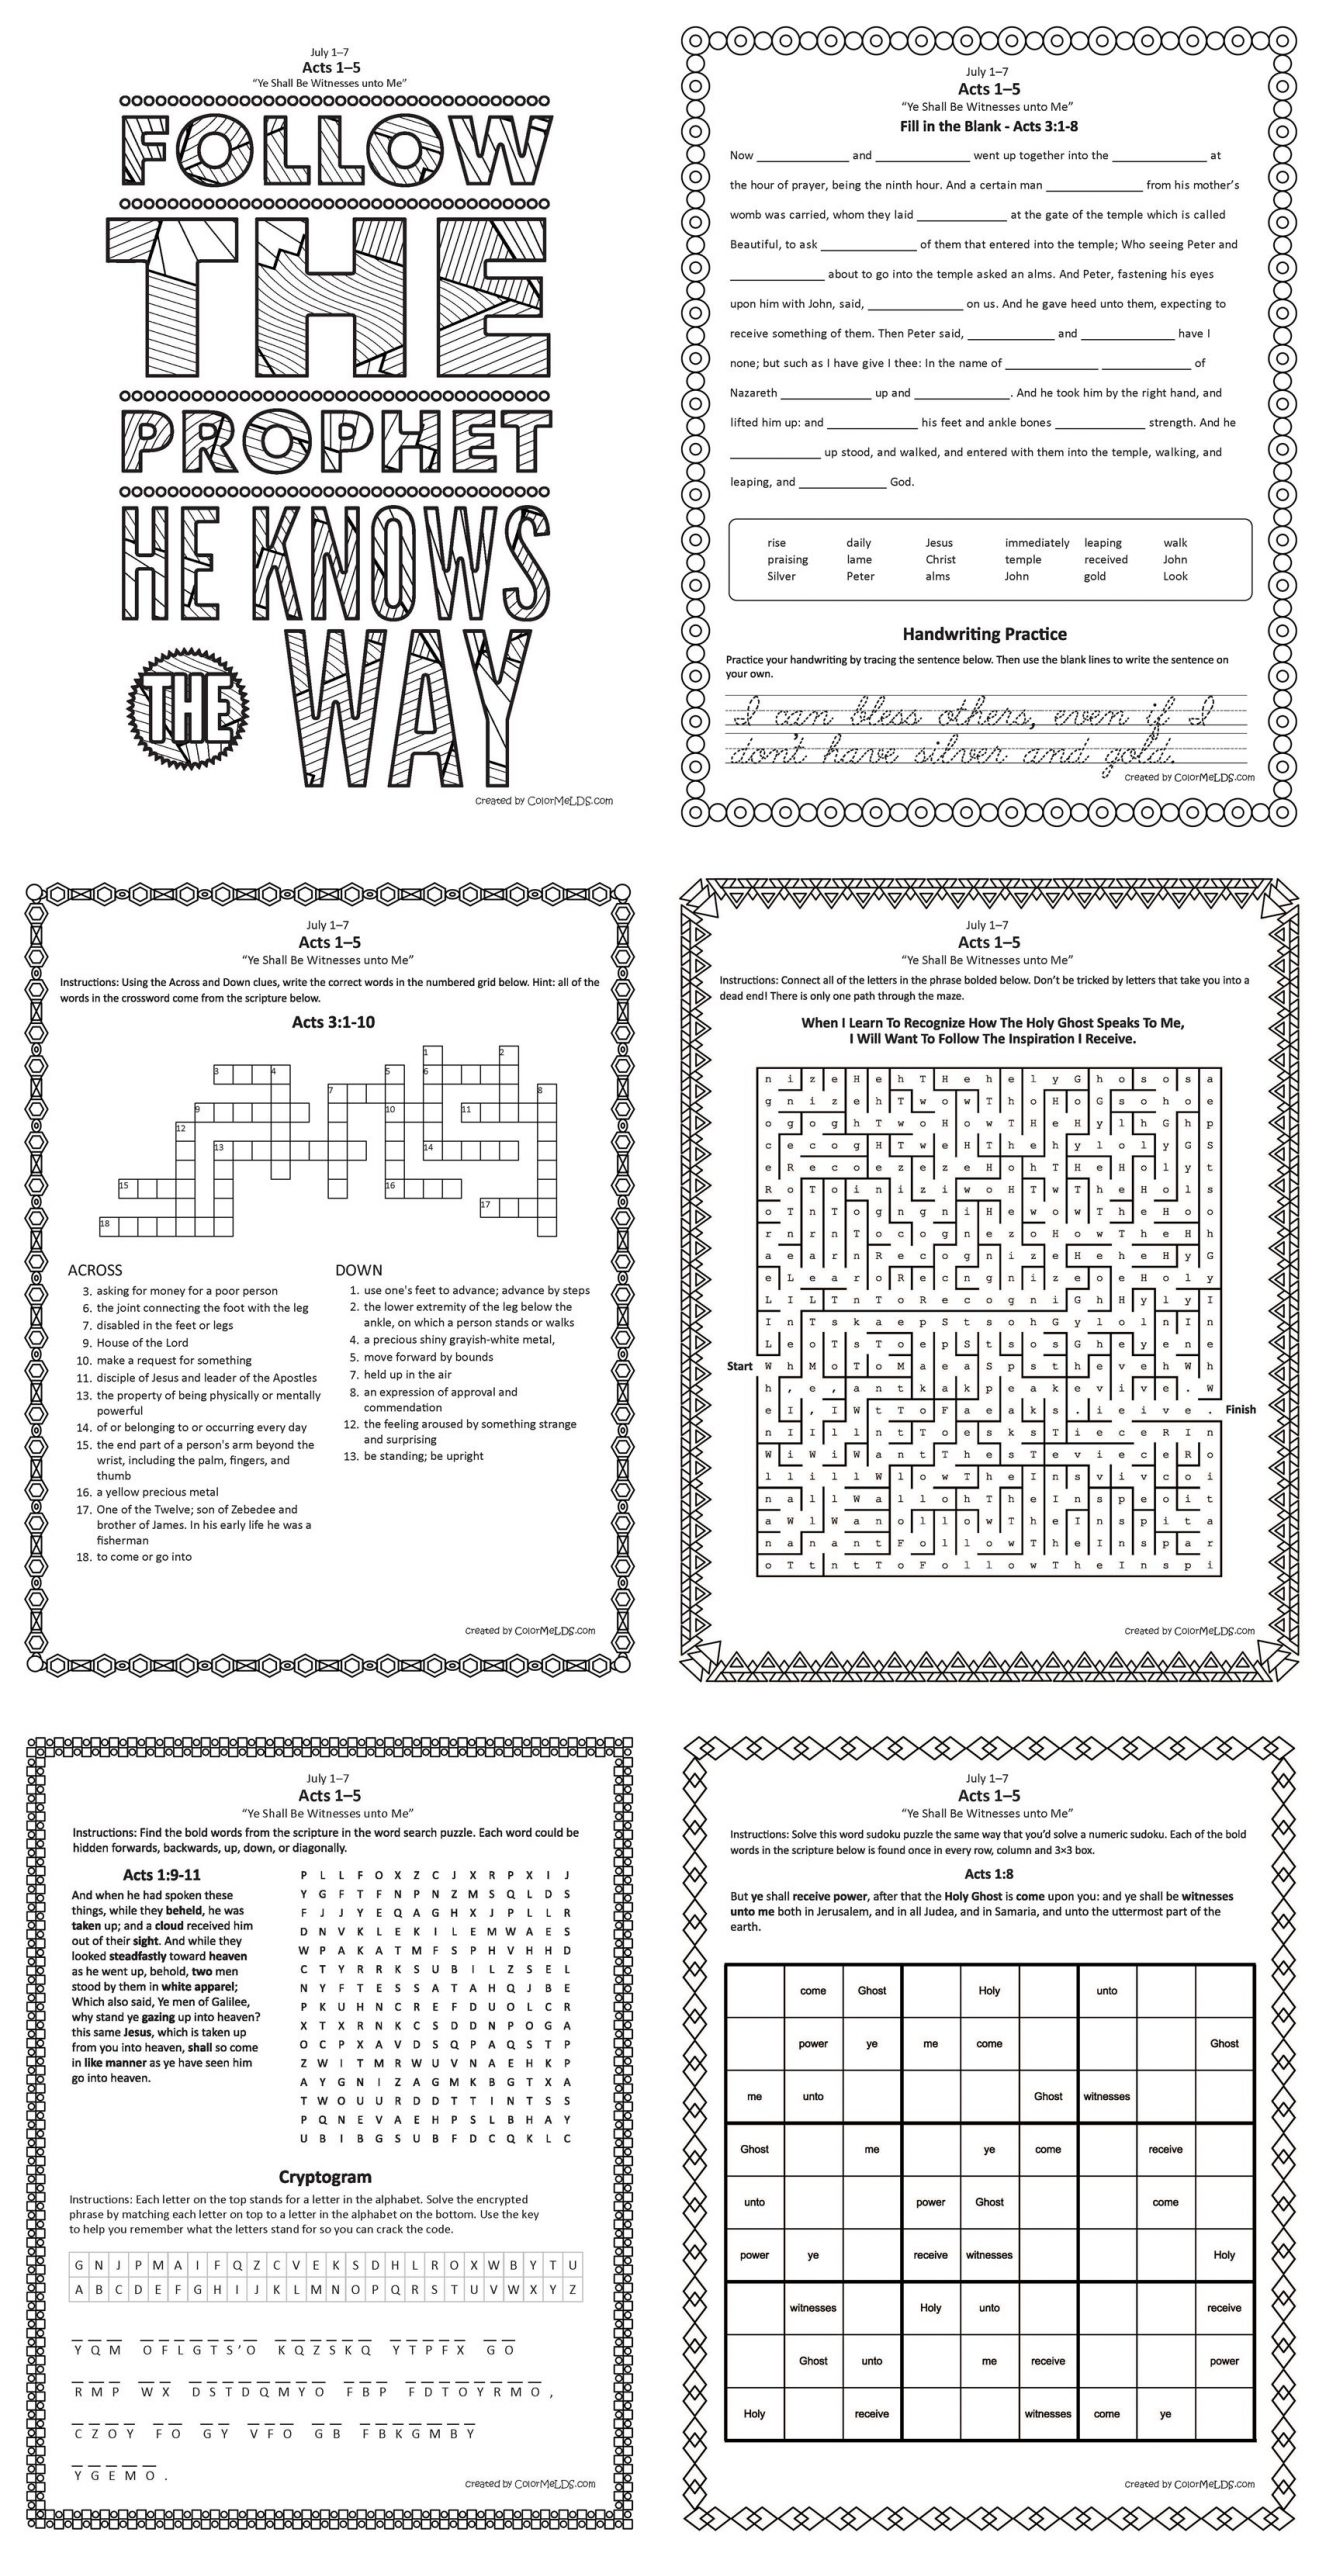 Free Lds Worksheets And Printables - Mazes, Crosswords, Word